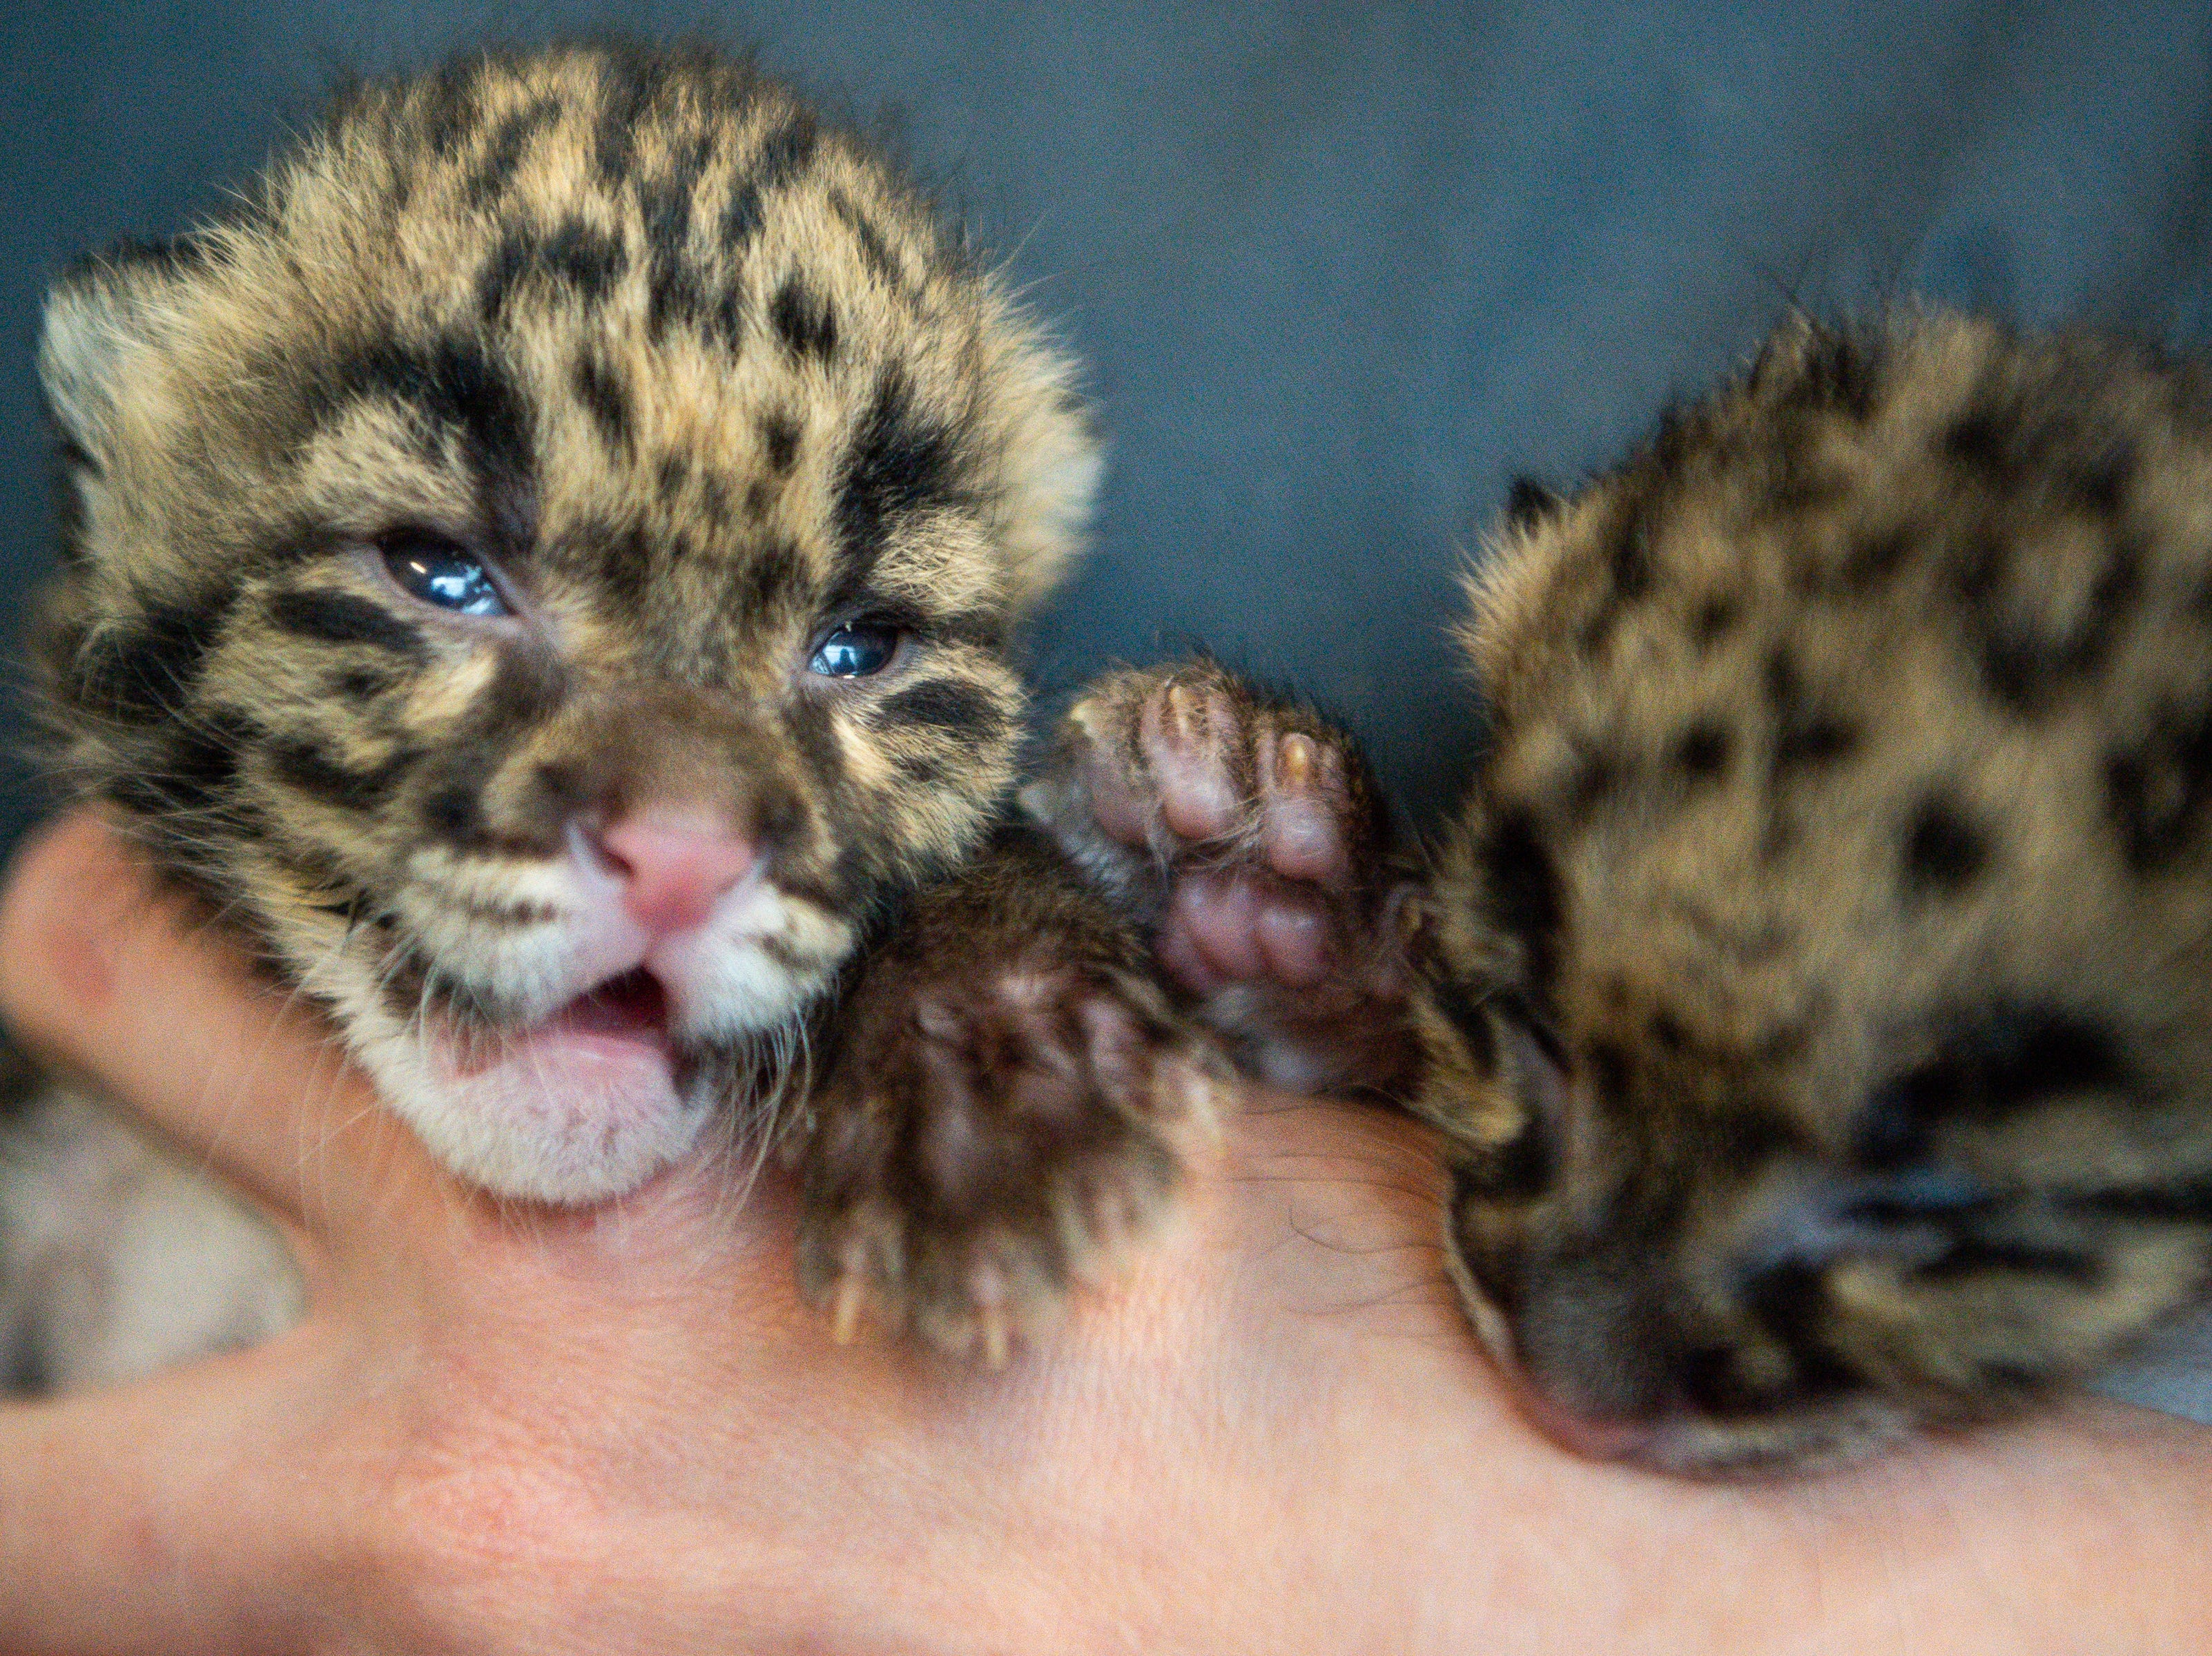 Two clouded leopard cubs move around in Director of Veterinary Services Heather Robertson's hands at the Nashville Zoo at Grassmere Friday, April 5, 2019, in Nashville, Tenn. The cubs' mother, Niran, was the first clouded leopard to be born from artificial insemination.